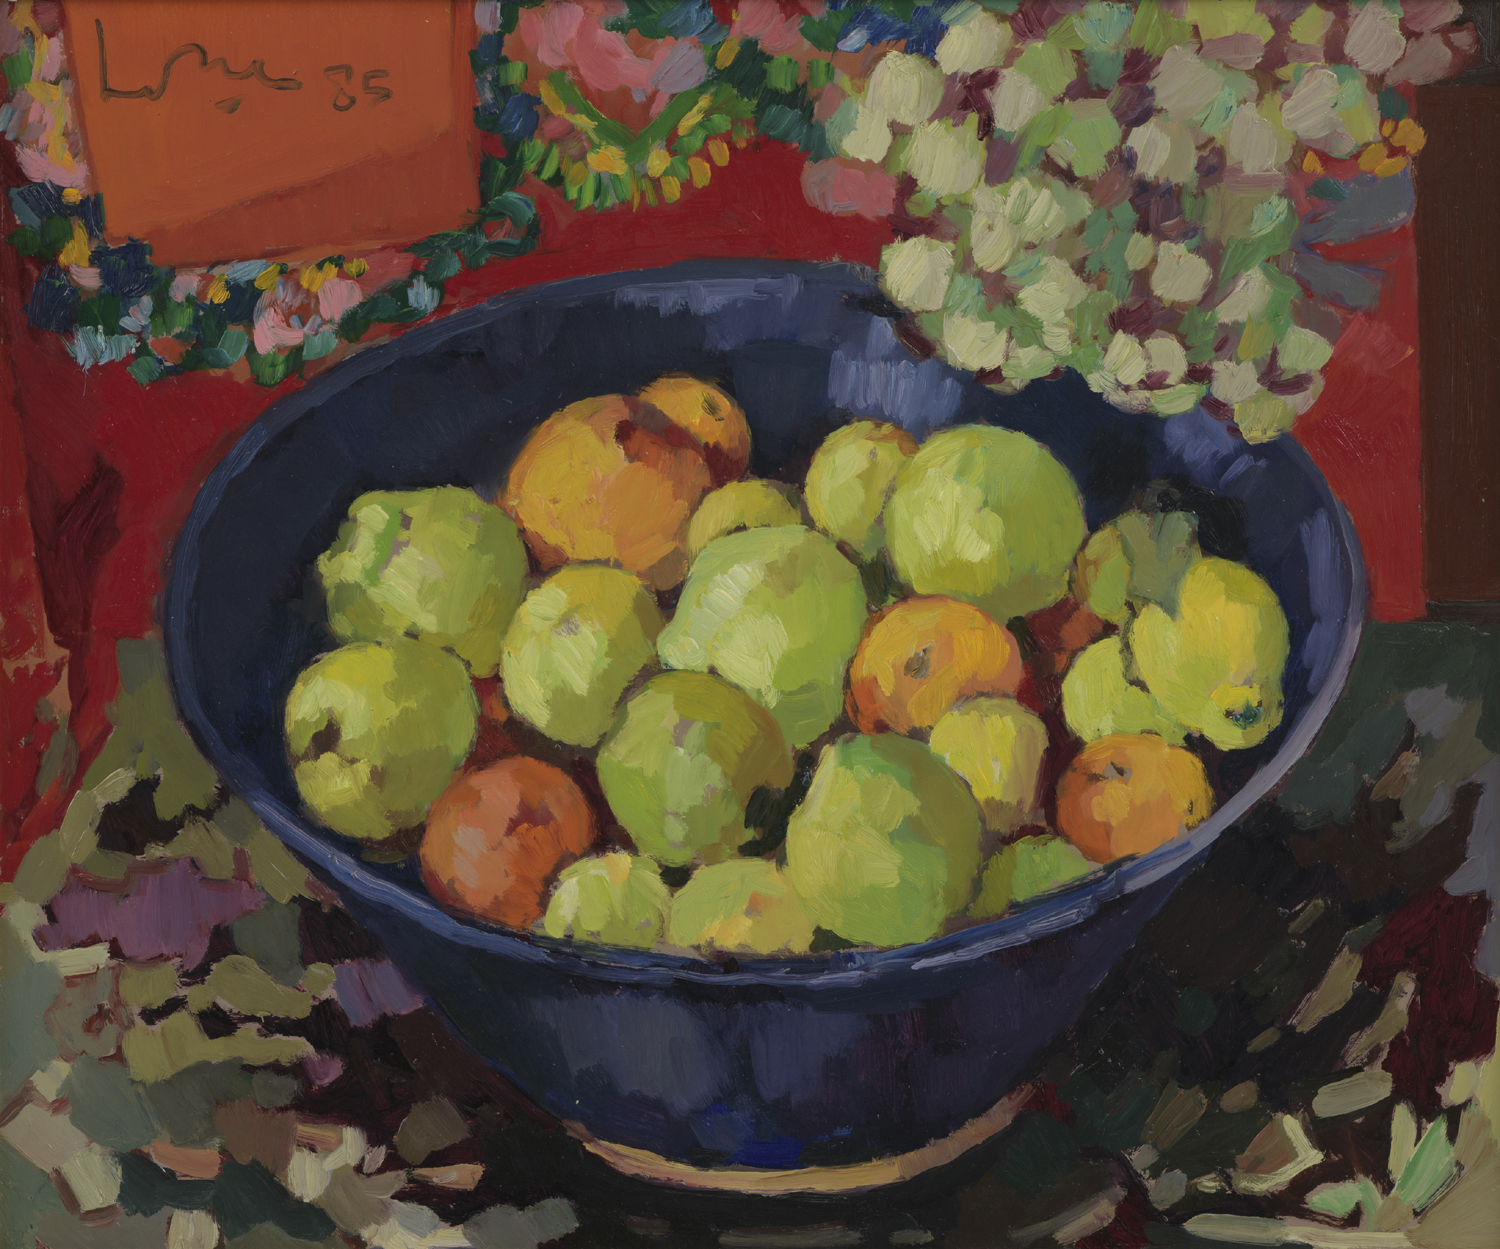 Kees Bol | A still life with fruit in a blue bowl | Kunsthandel Bies | Bies Gallery